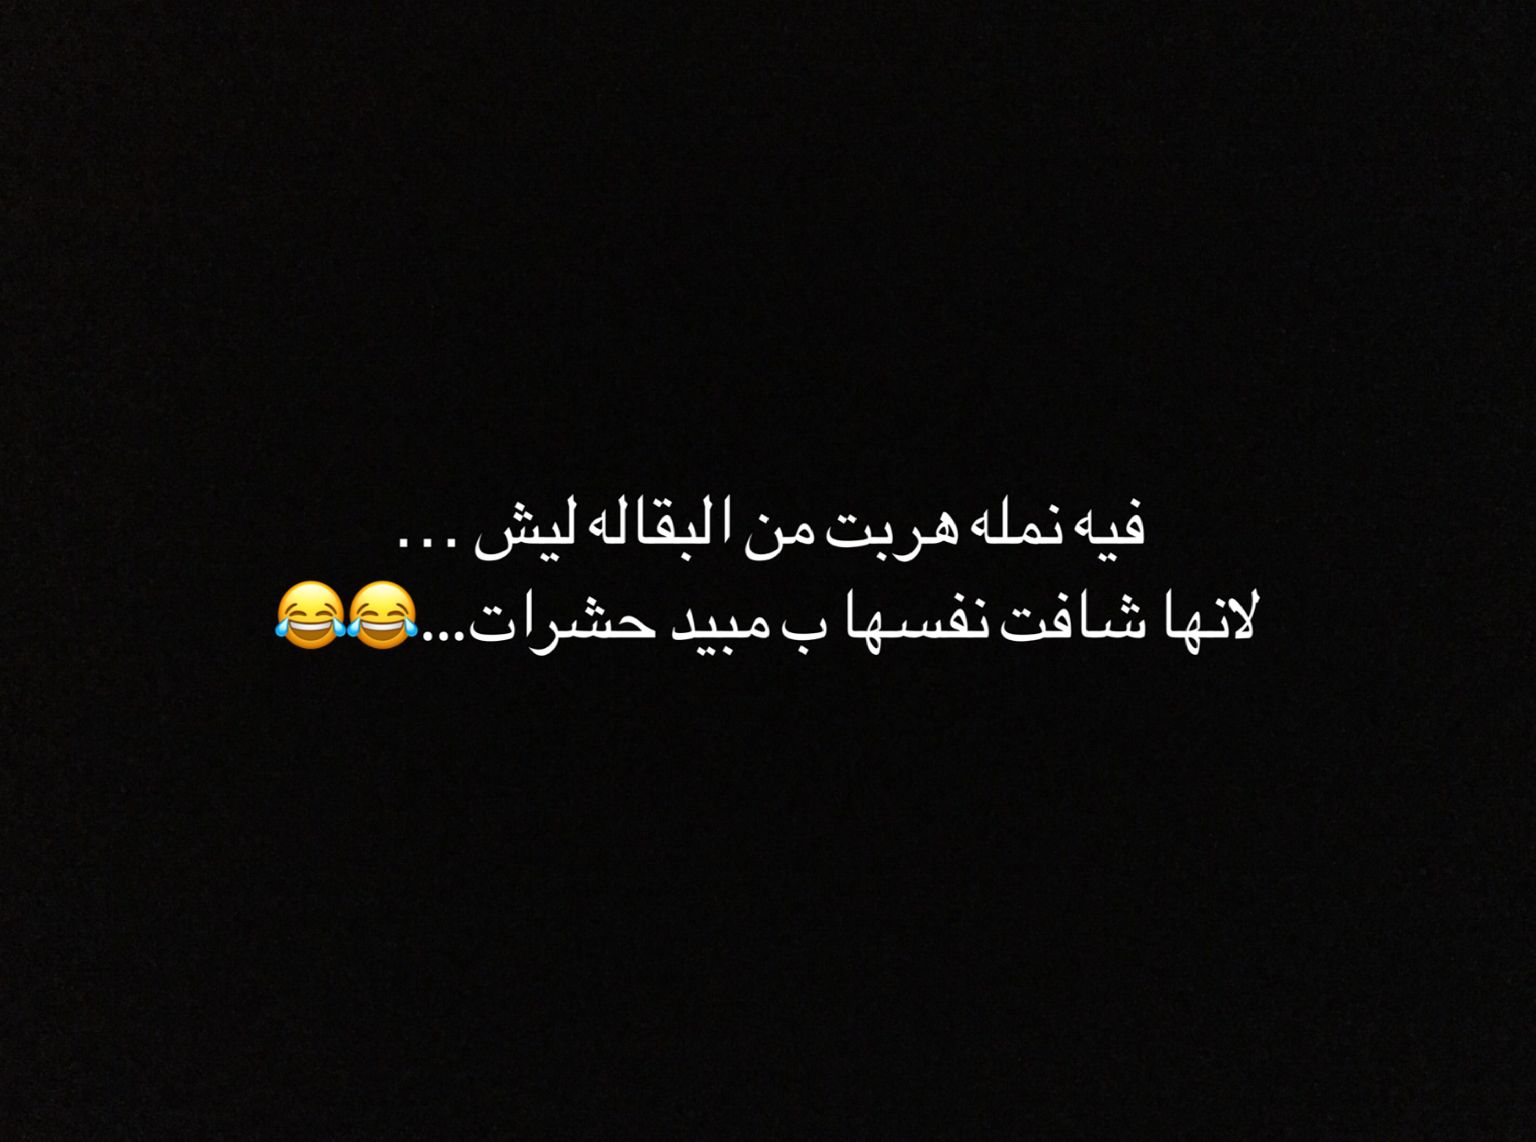 Pin By Basmah 2010 On نكت نمل وغيرها Funny Arabic Quotes Cute Disney Wallpaper Funny Quotes